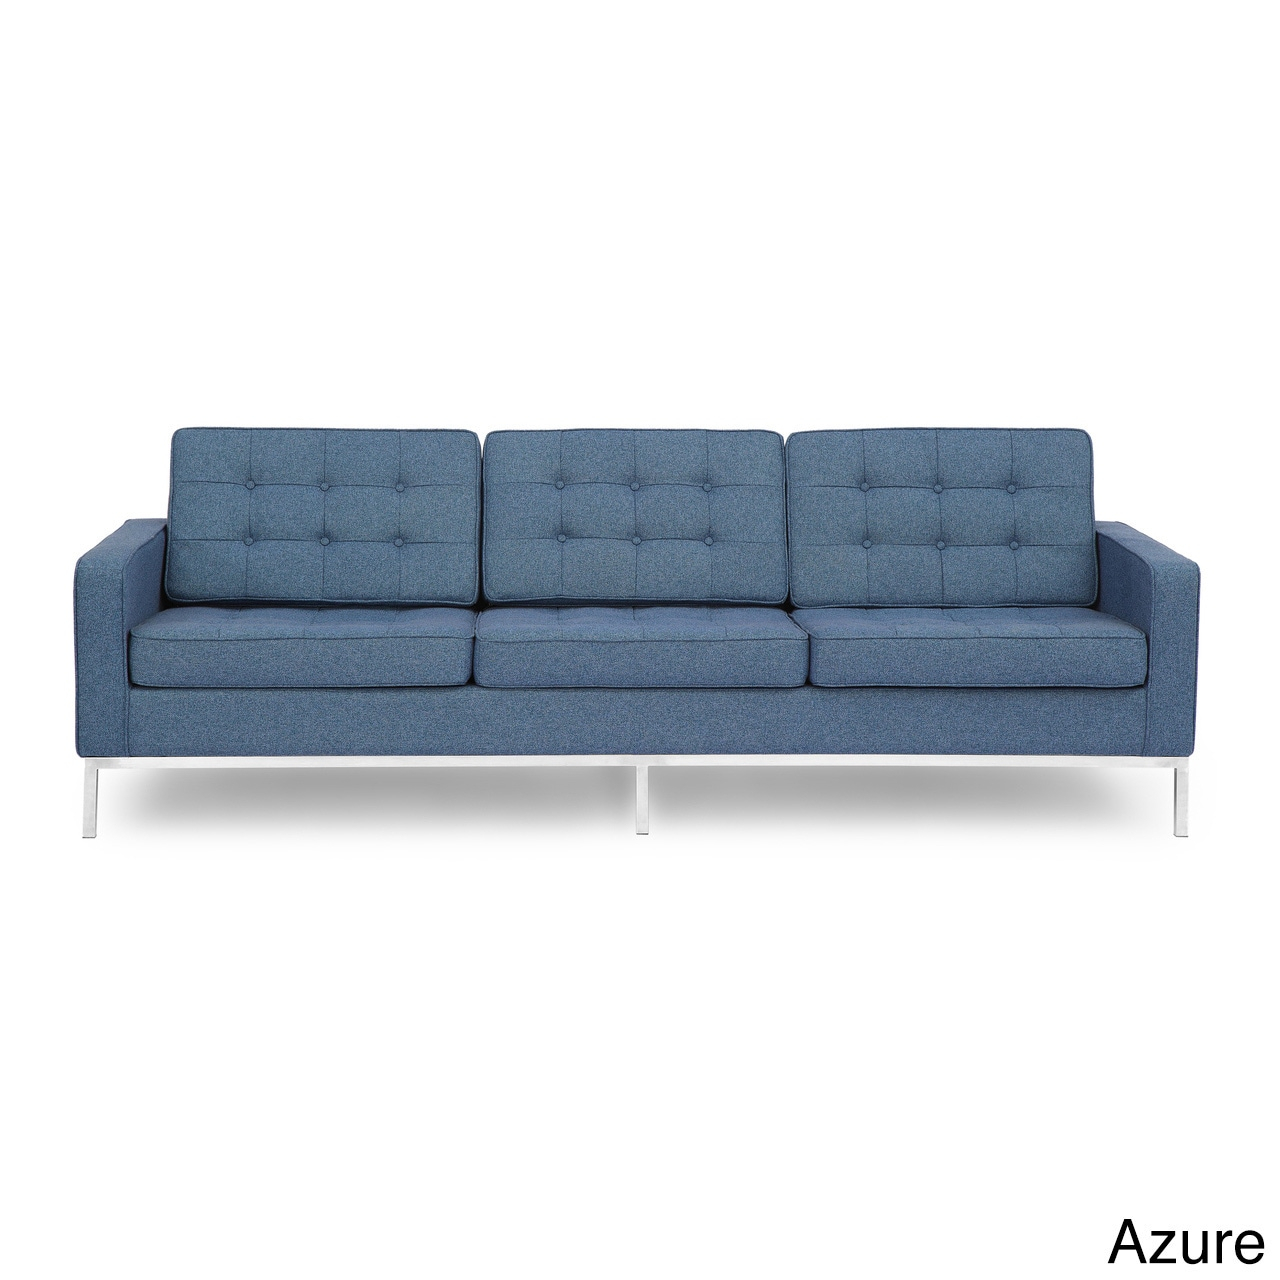 Kardiel Florence Knoll Style Sofa 3 Seat, Premium Fabric For Florence Knoll Living Room Sofas (View 4 of 15)